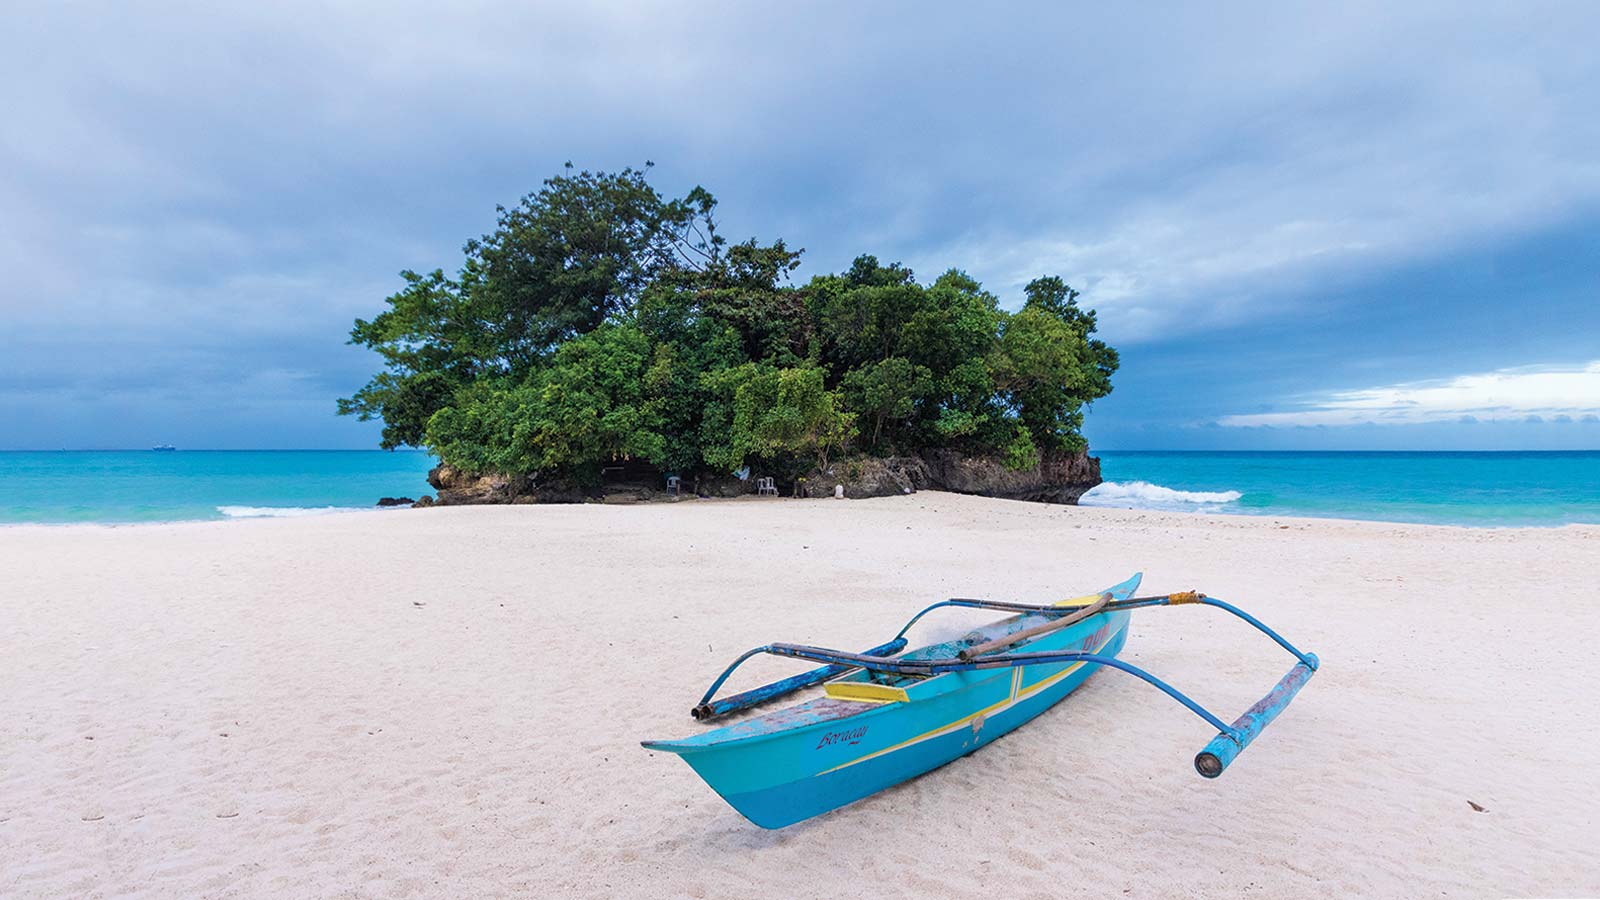 Philippine paraw boat at Punta Bunga Beach at the Movenpick Boracay hotel